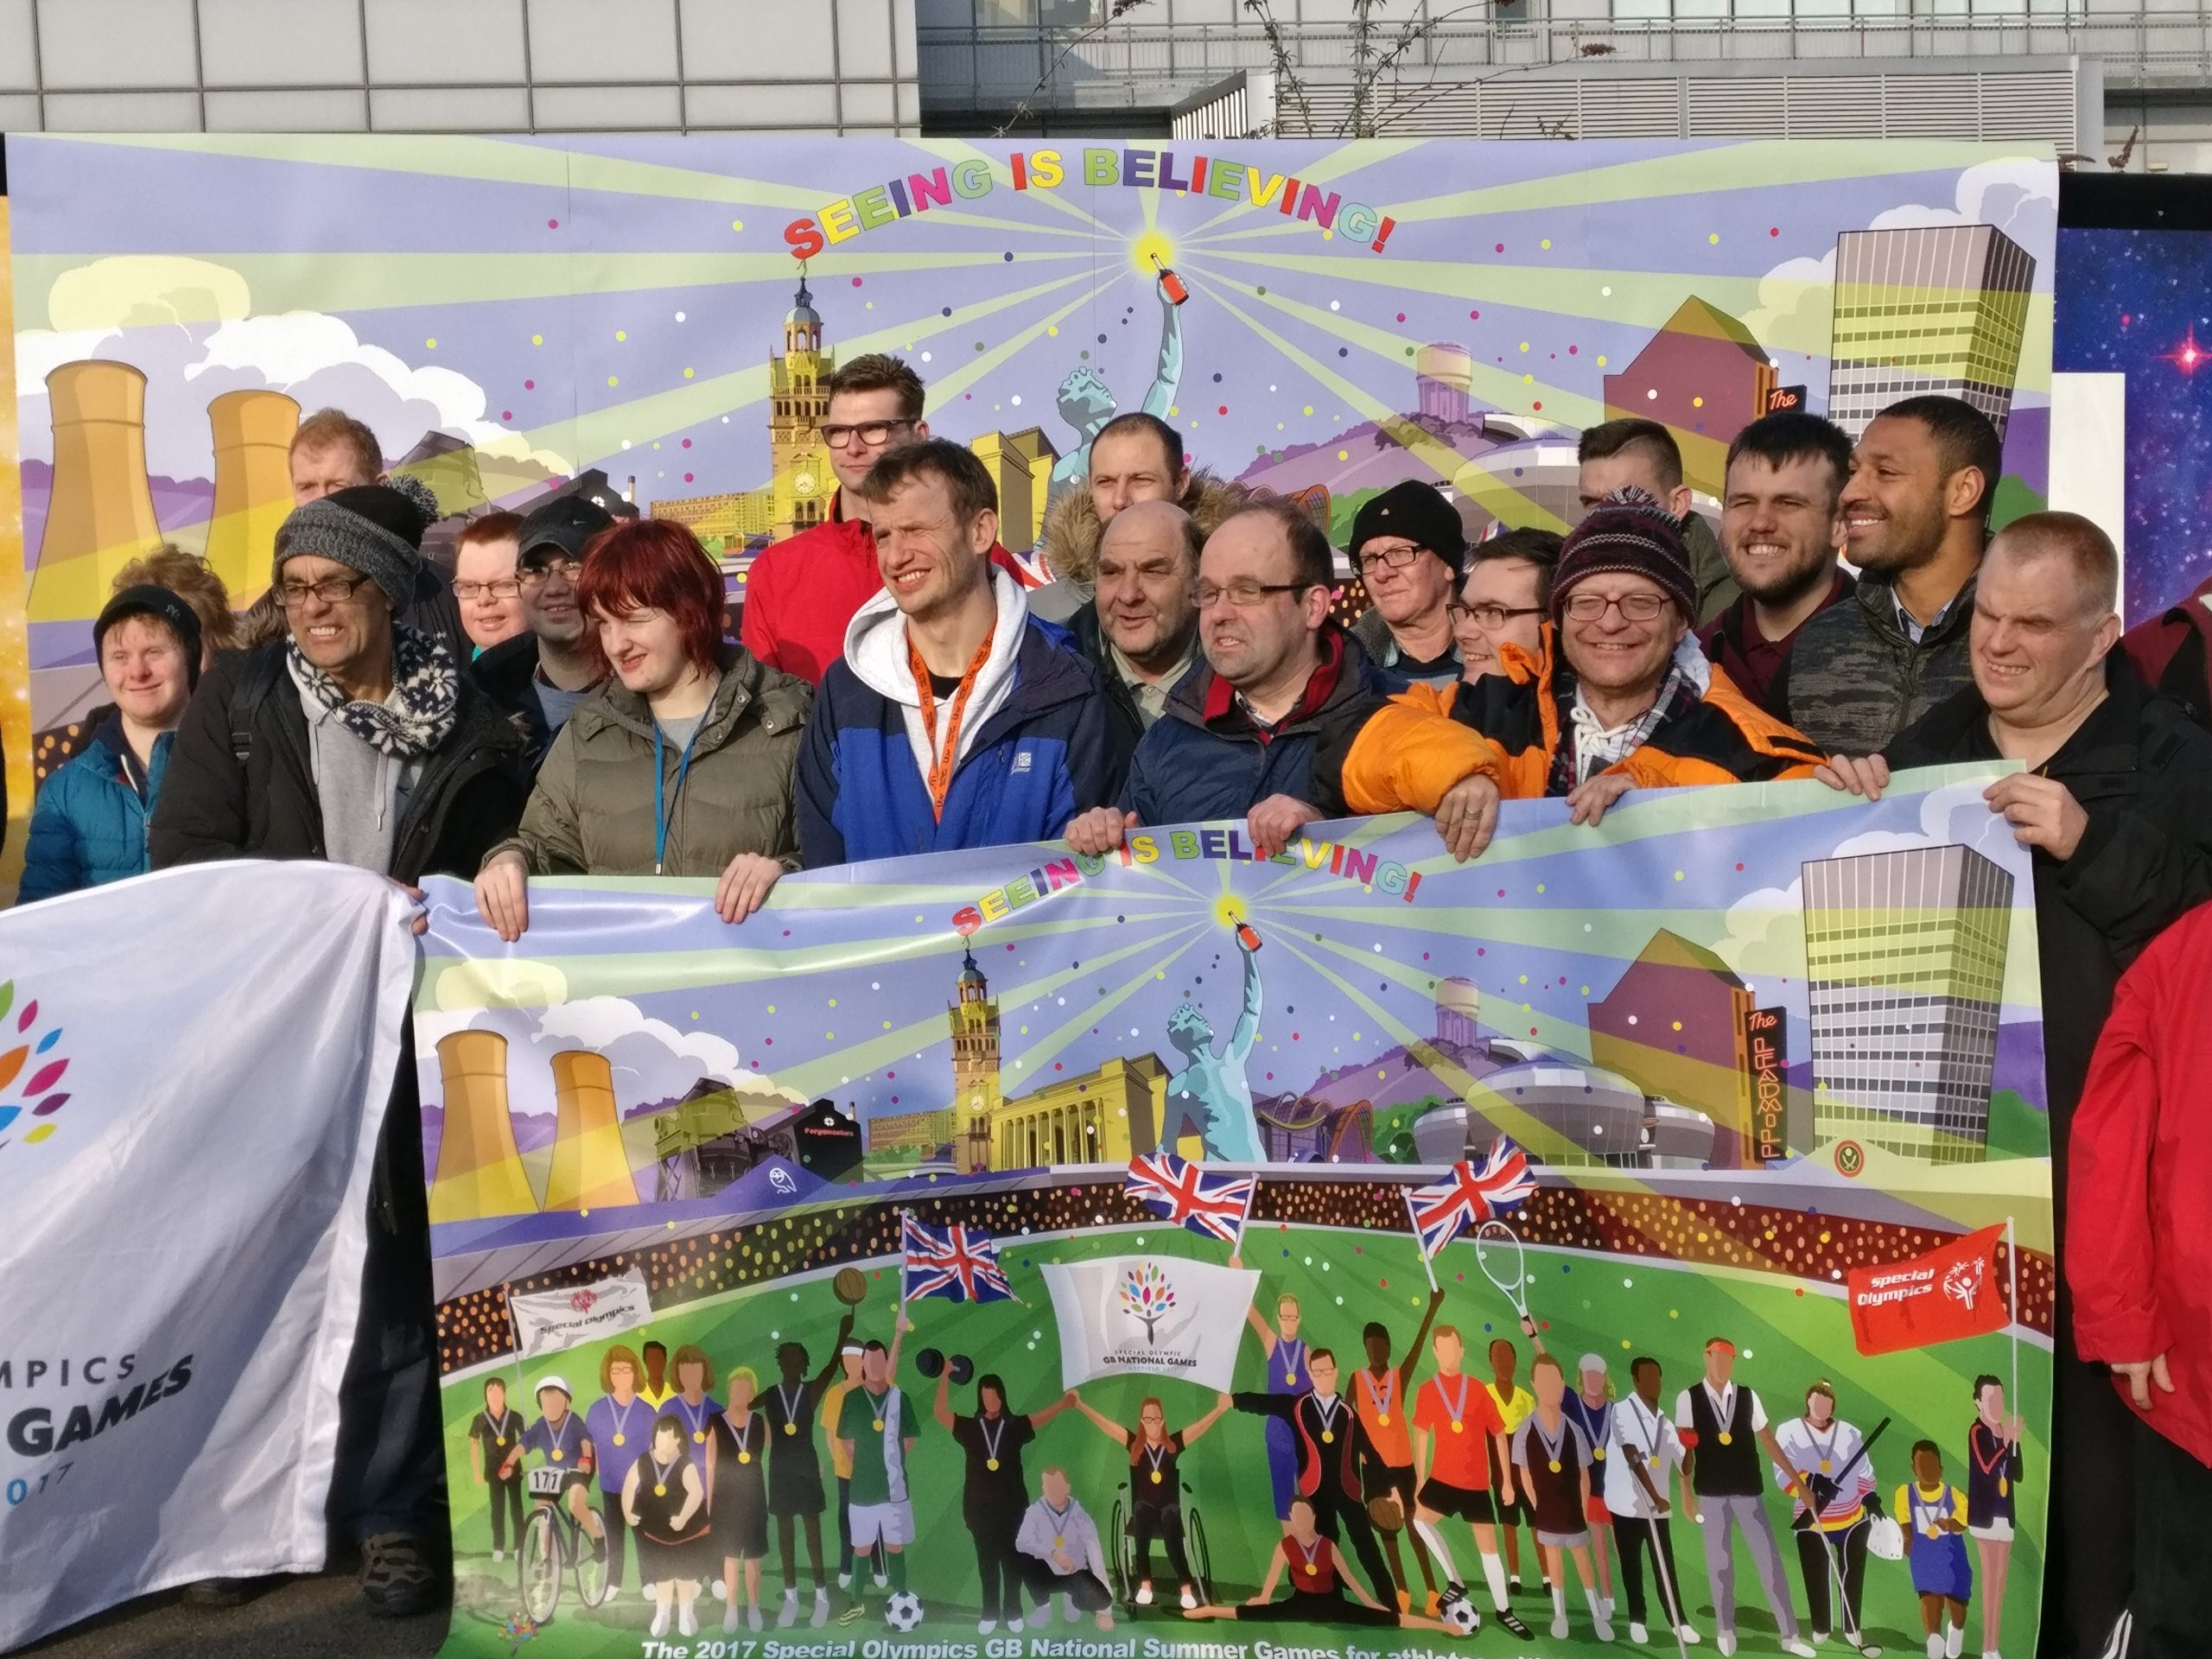 Artists and athletes involved in the creation of the Special Olympics mural